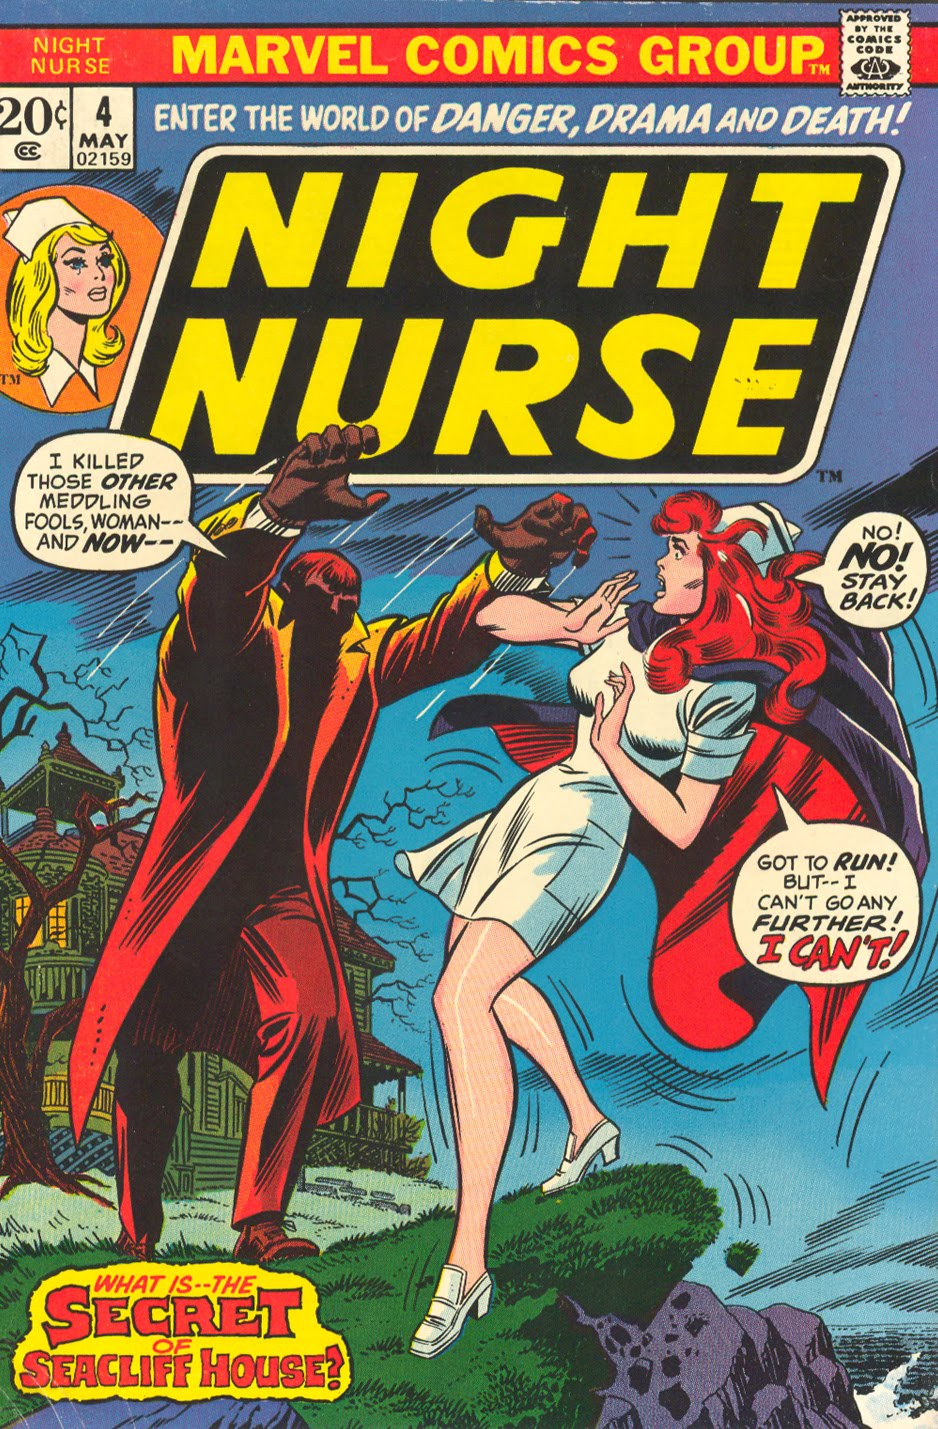 Night Nurse #4 Marvel Comics